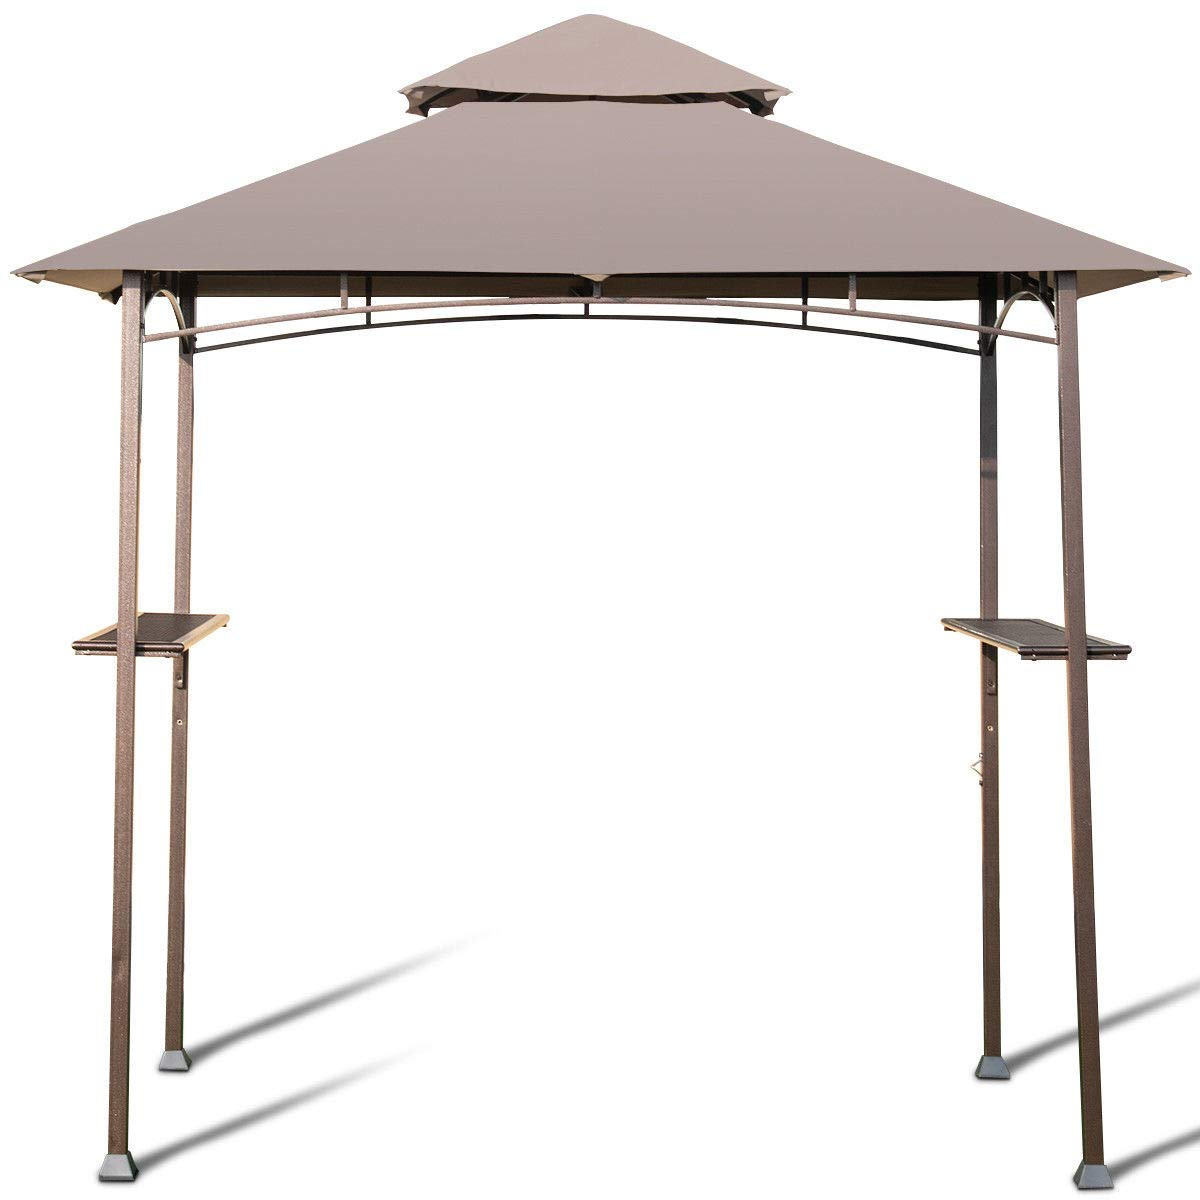 AK Energy 8'x5' Outdoor Barbecue Grill Gazebo Canopy Tent Patio BBQ Shelter W/Air Vent Side Shelf Khaki Color